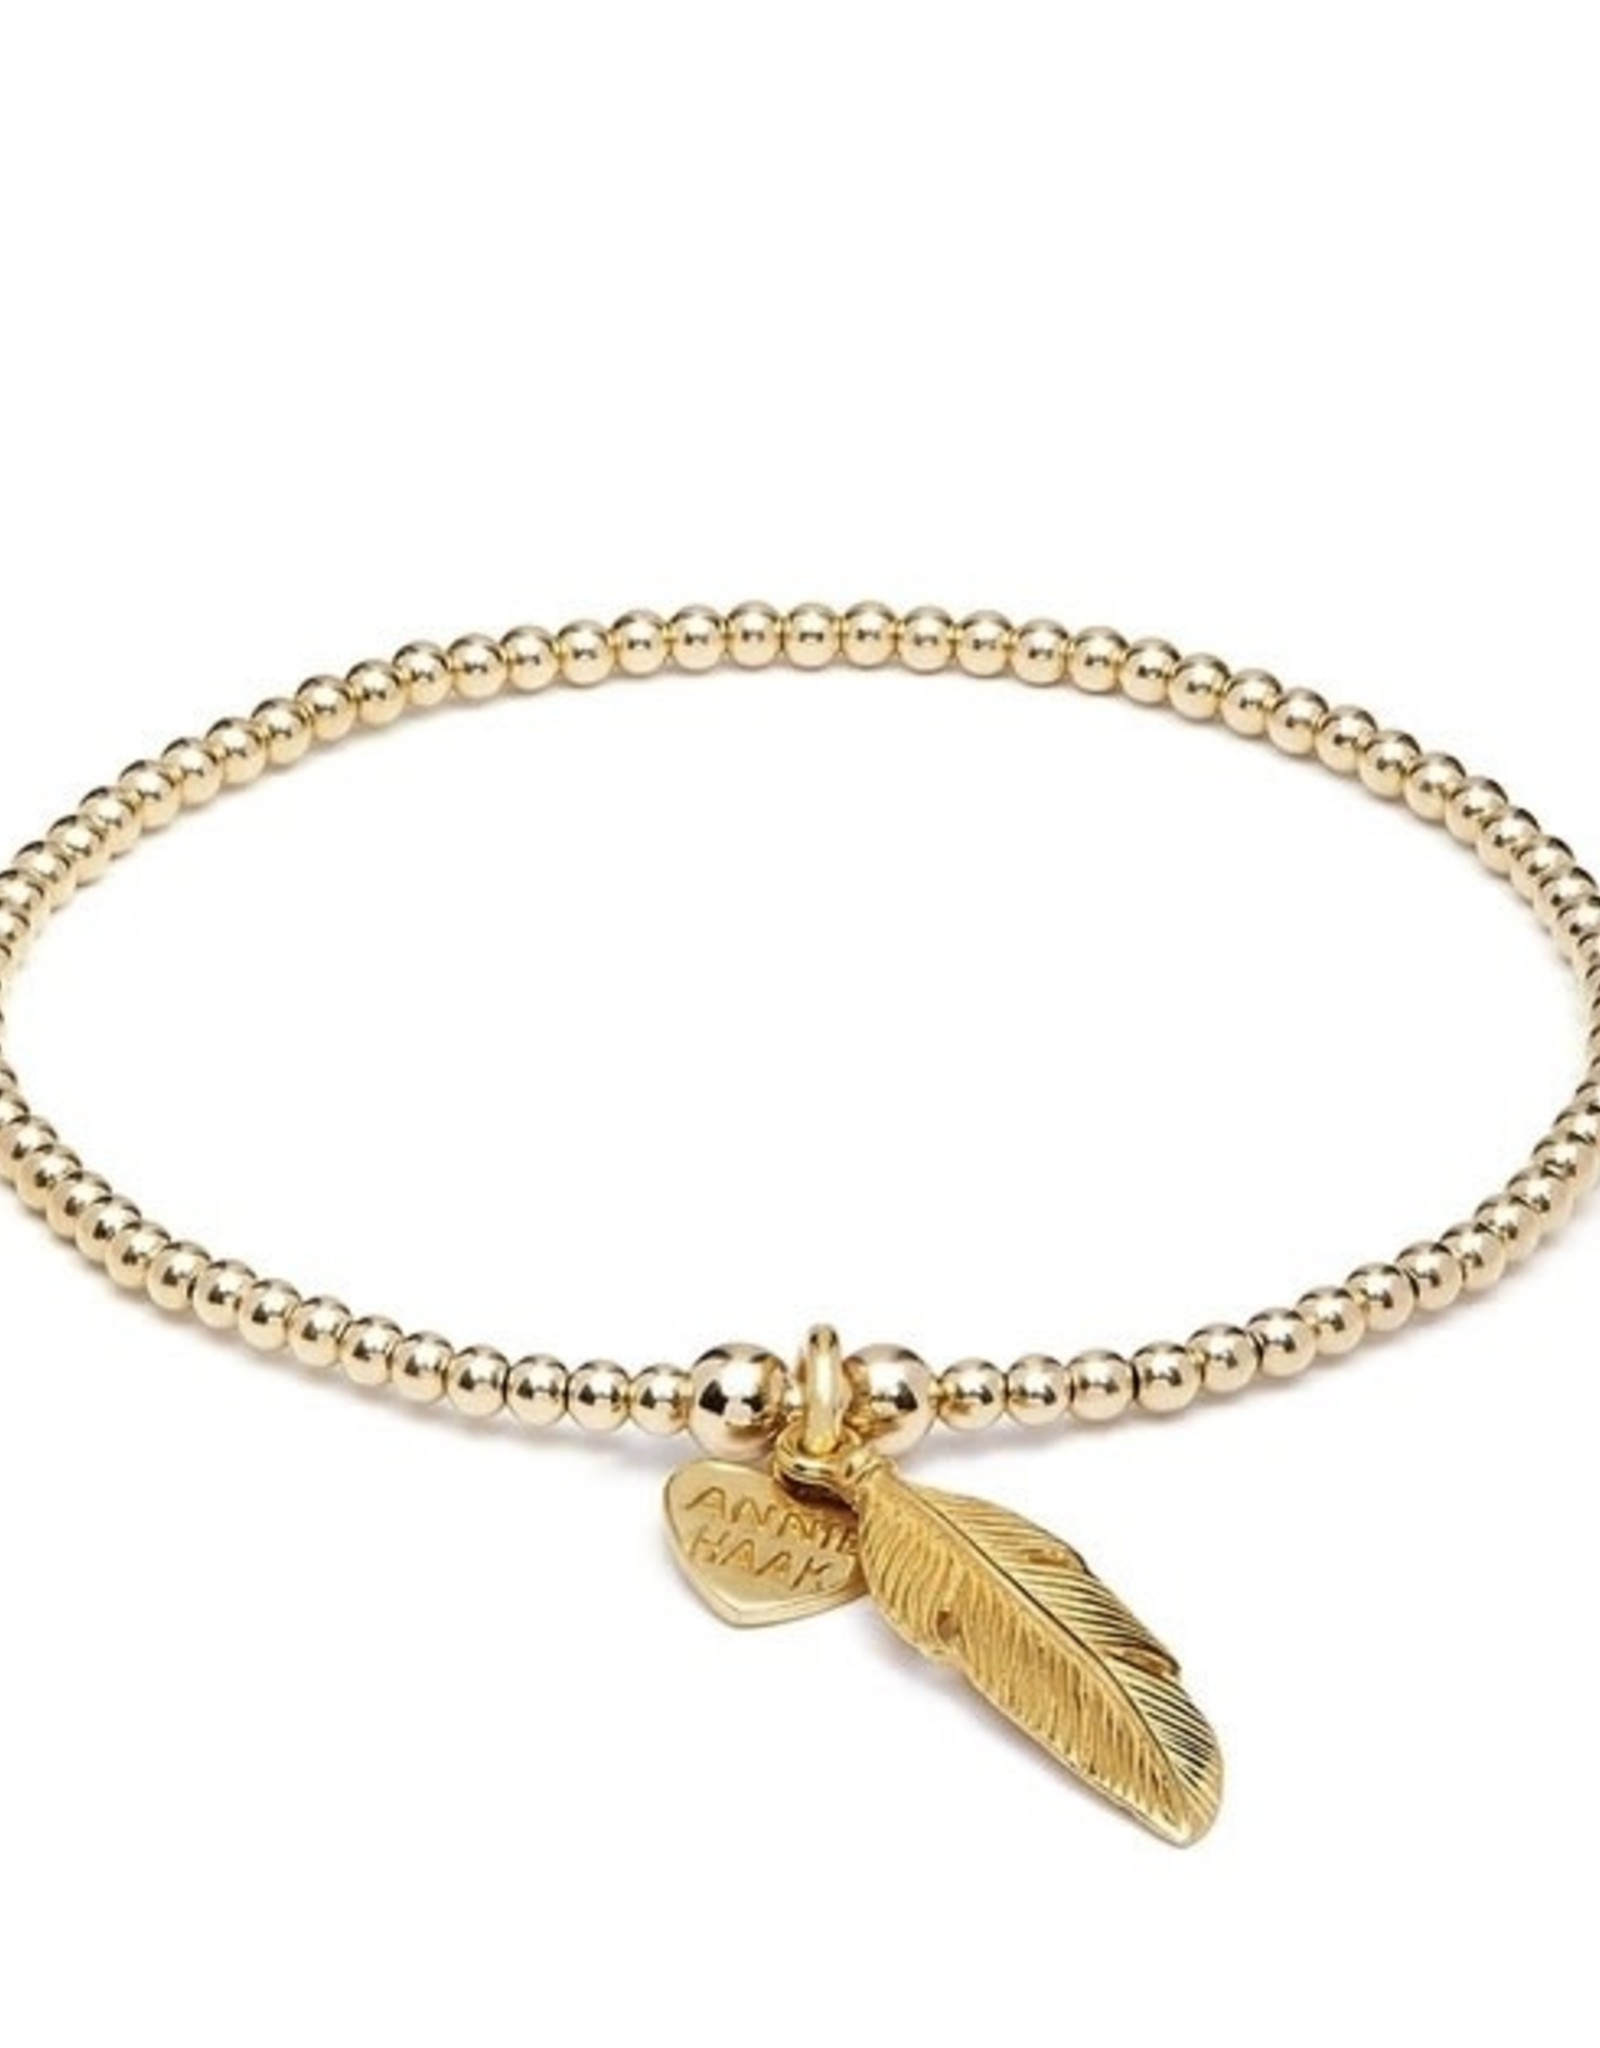 "ANNIE HAAK SANTEENIE GOLD  ""FEATHER"" CHARM BRACELET  FROM ANNIE HAAK"